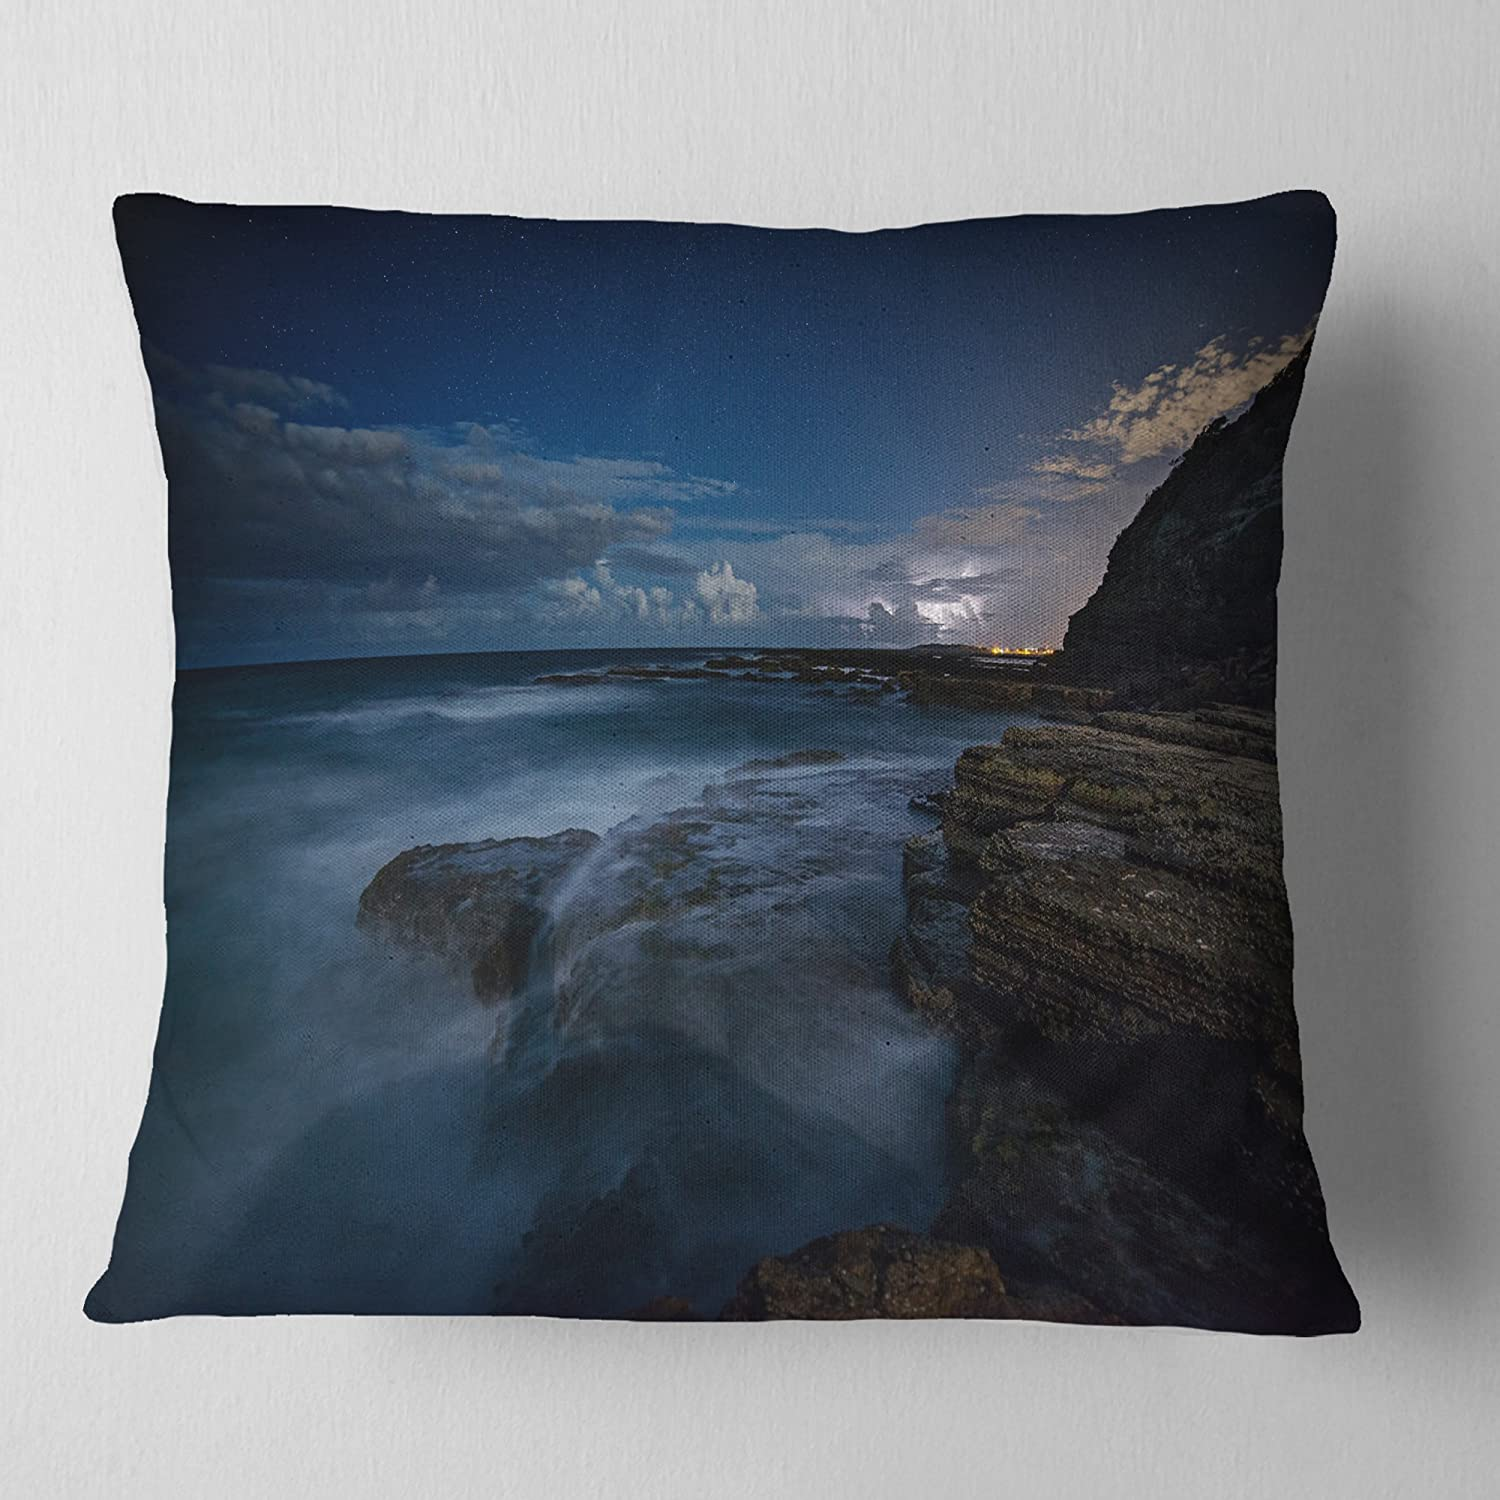 Designart Rocky Blue Ocean At Nighttime Seashore Throw Living Room Sofa Pillow Insert Cushion Cover Printed On Both Side 16 In X 16 In Arts Crafts Sewing